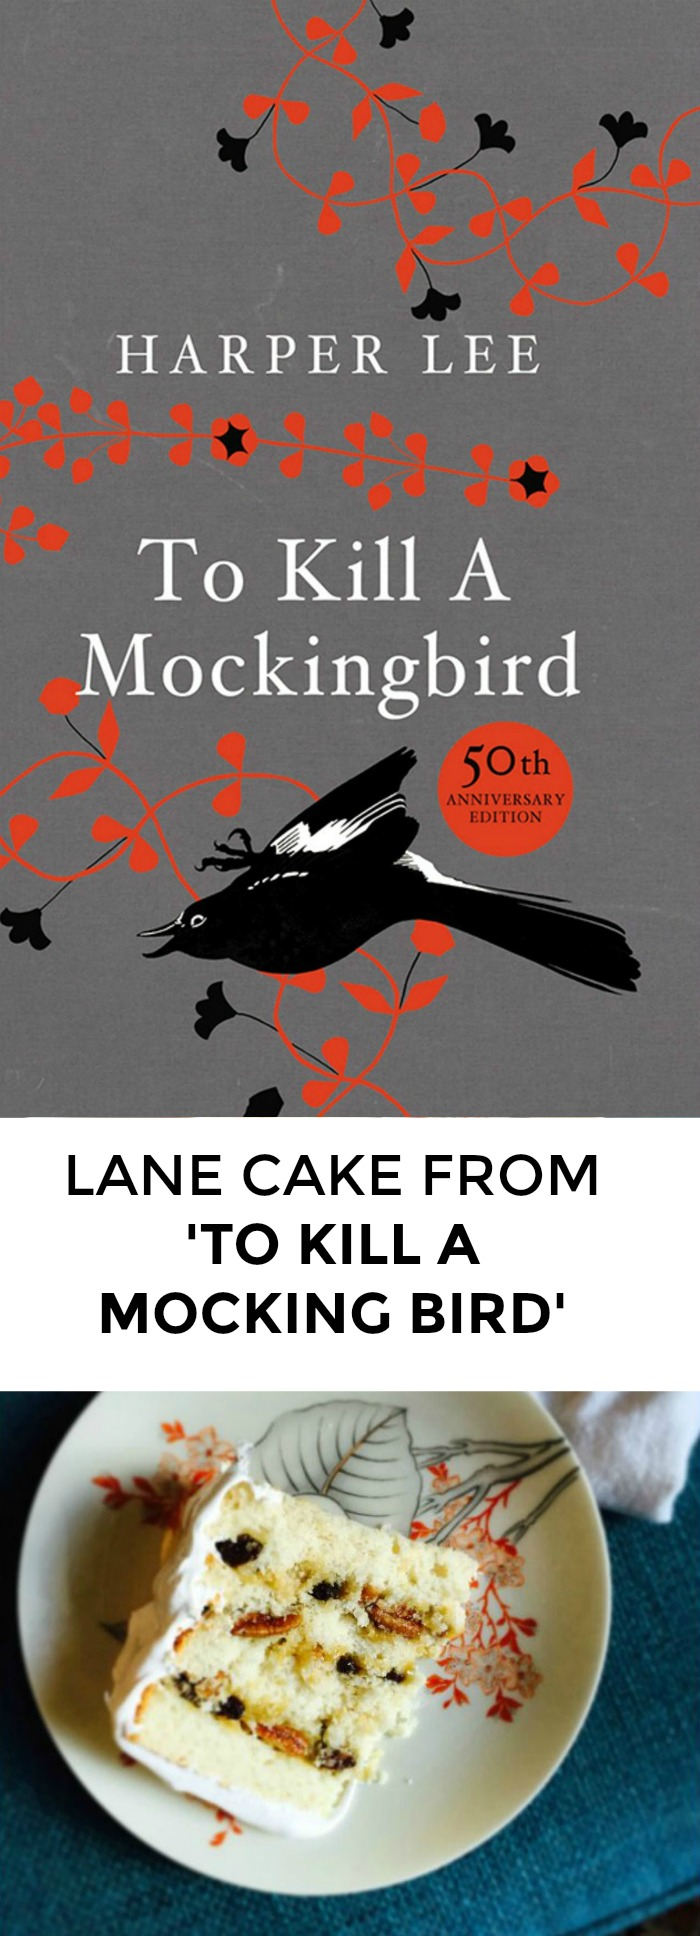 Looking for a recipe from To Kill A Mockingbird to impress your book club? Click through for an amazing Lane Cake recipe that will knock people's socks off!